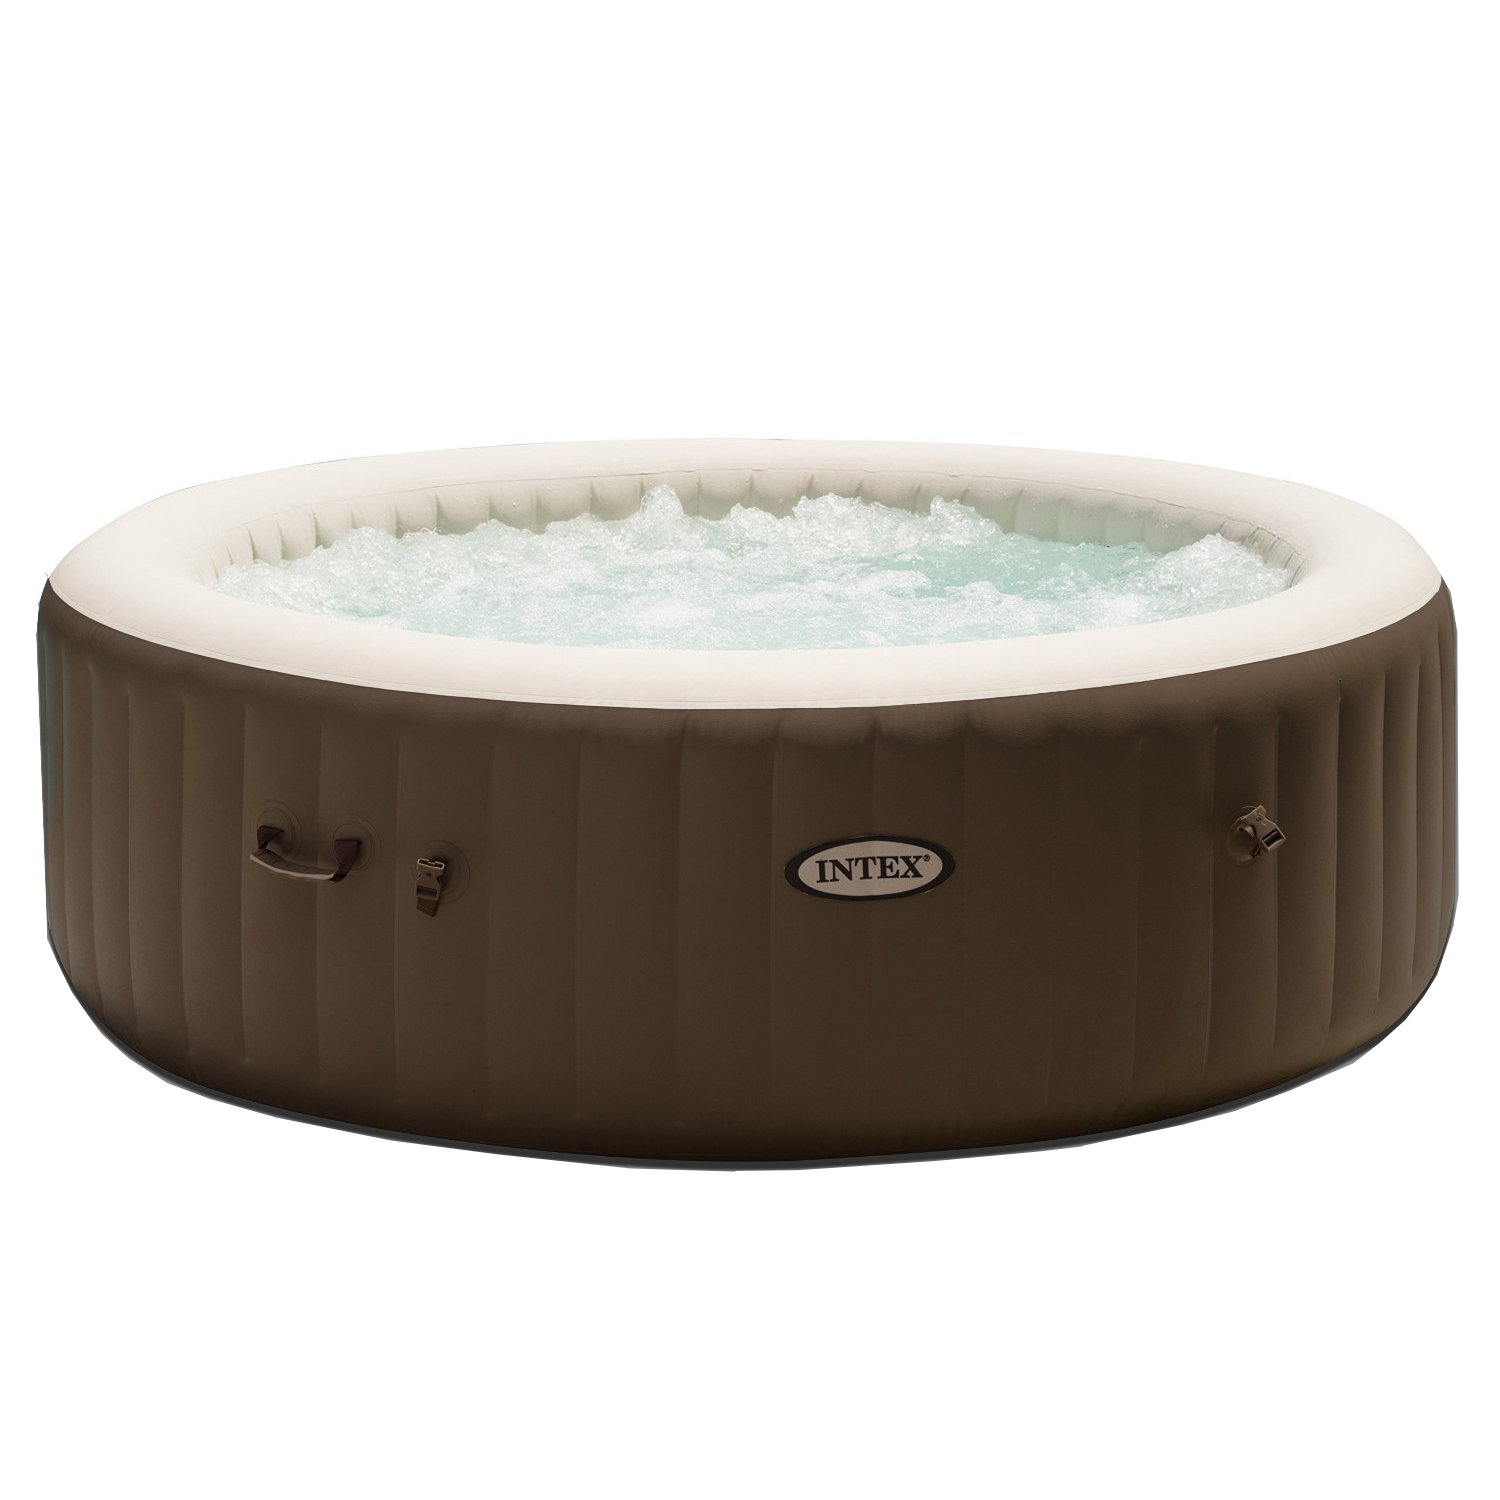 Cheap One Person Hot Tub Spa, find One Person Hot Tub Spa deals on ...